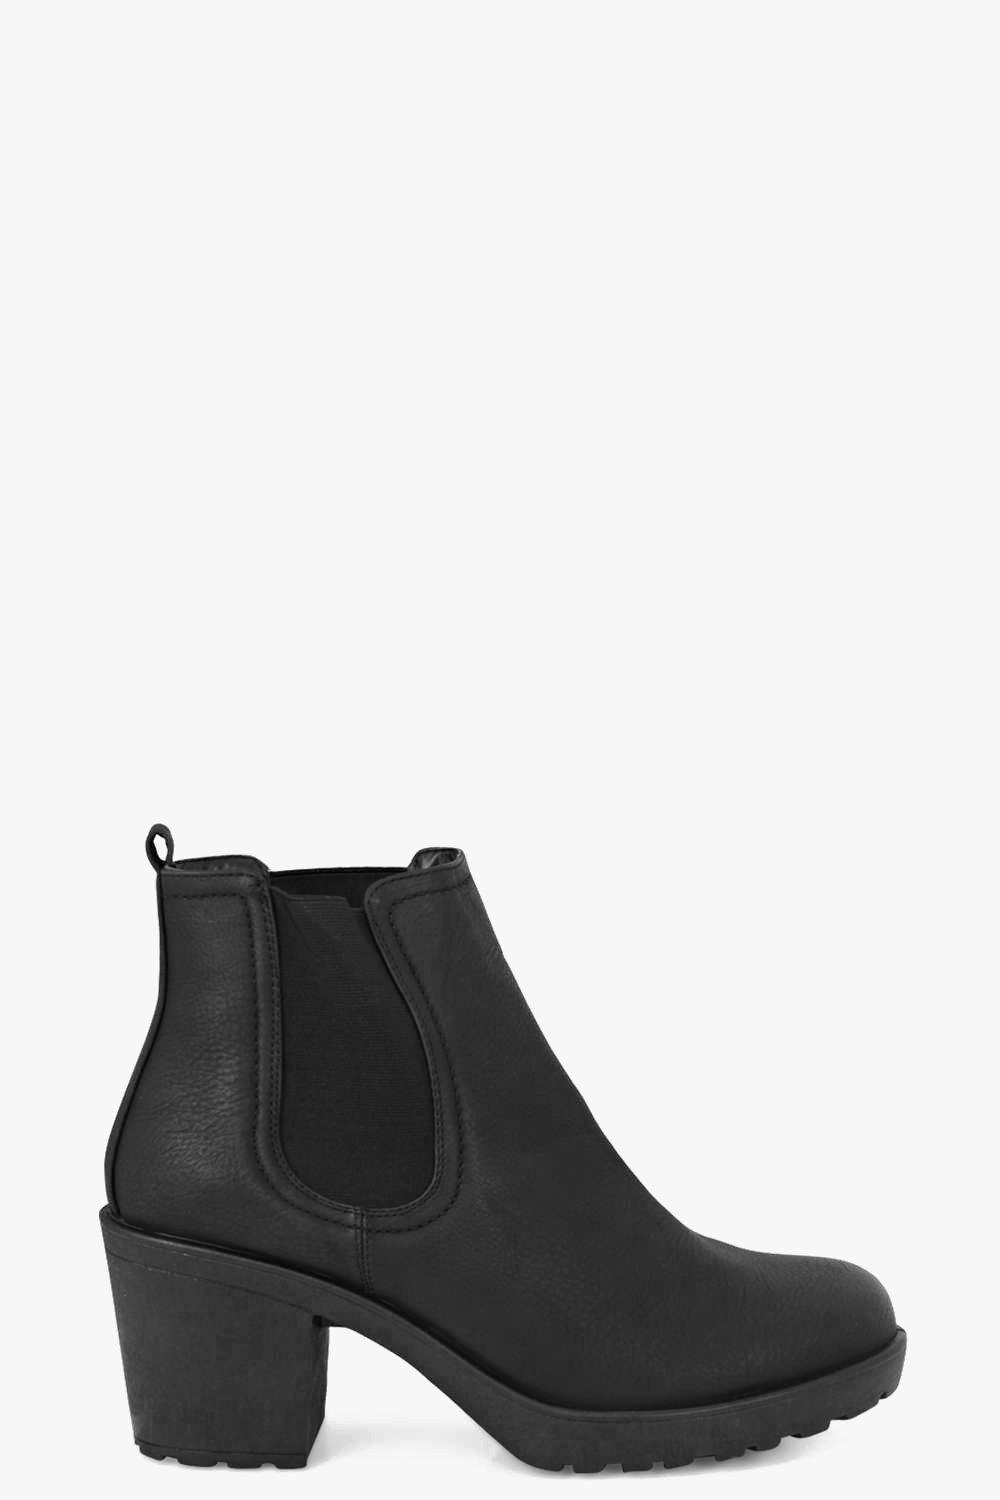 matilda block heel chelsea boot at boohoo